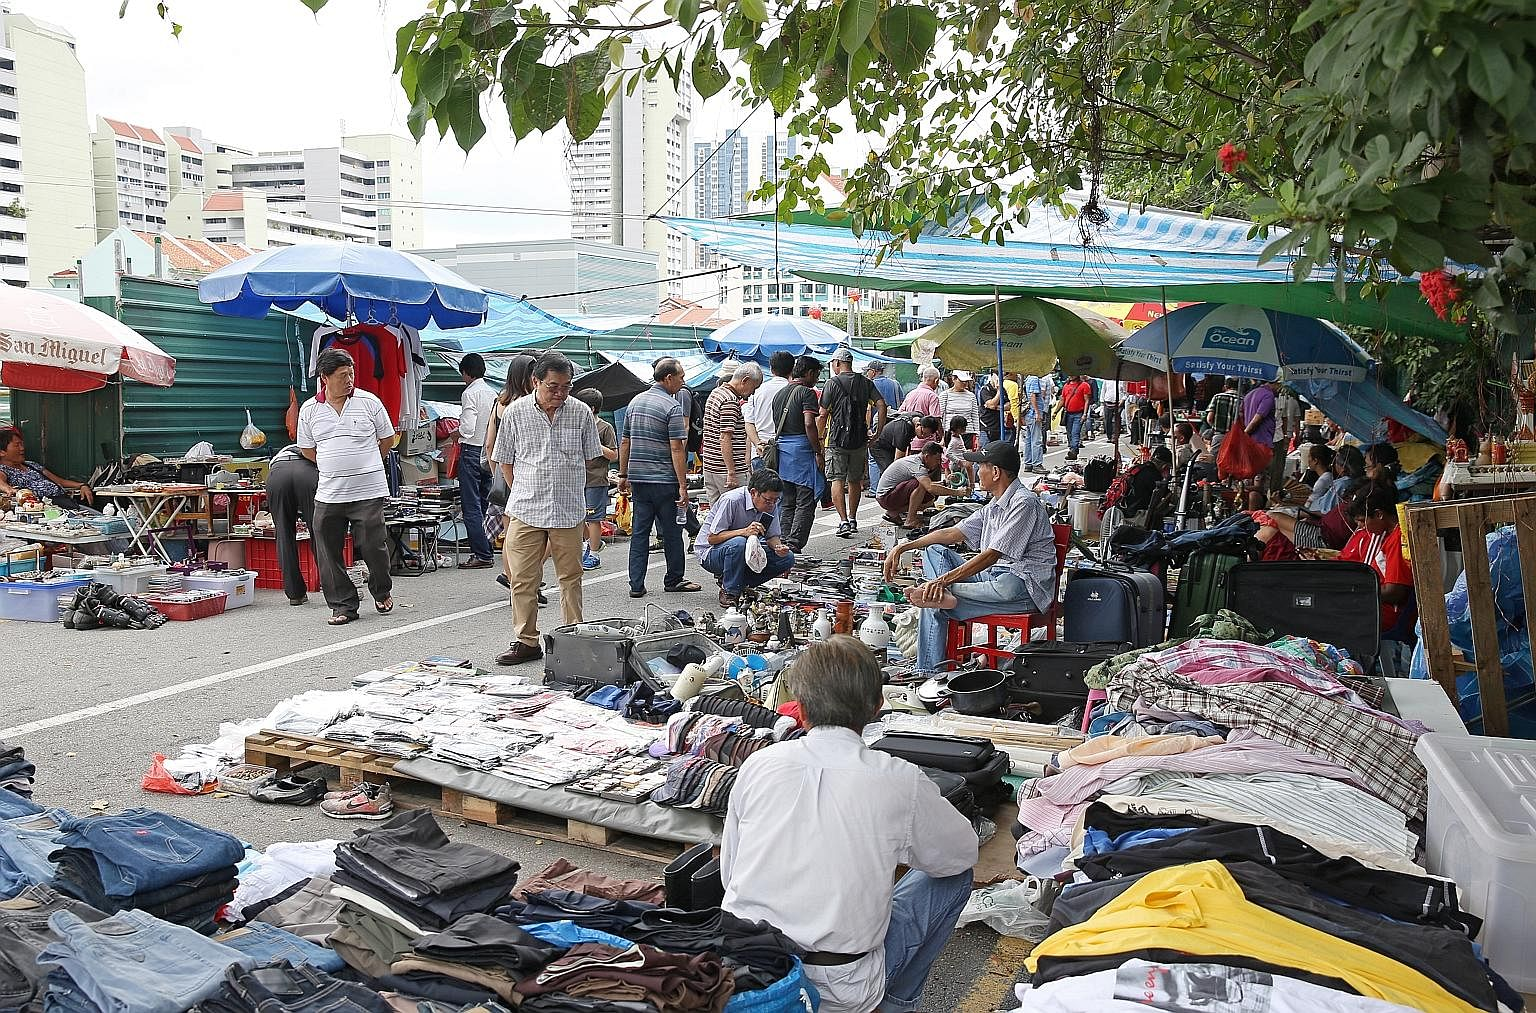 The flea market has served as the go-to place for the underprivileged, filling a gap mainstream department stores and malls have been unable to plug.